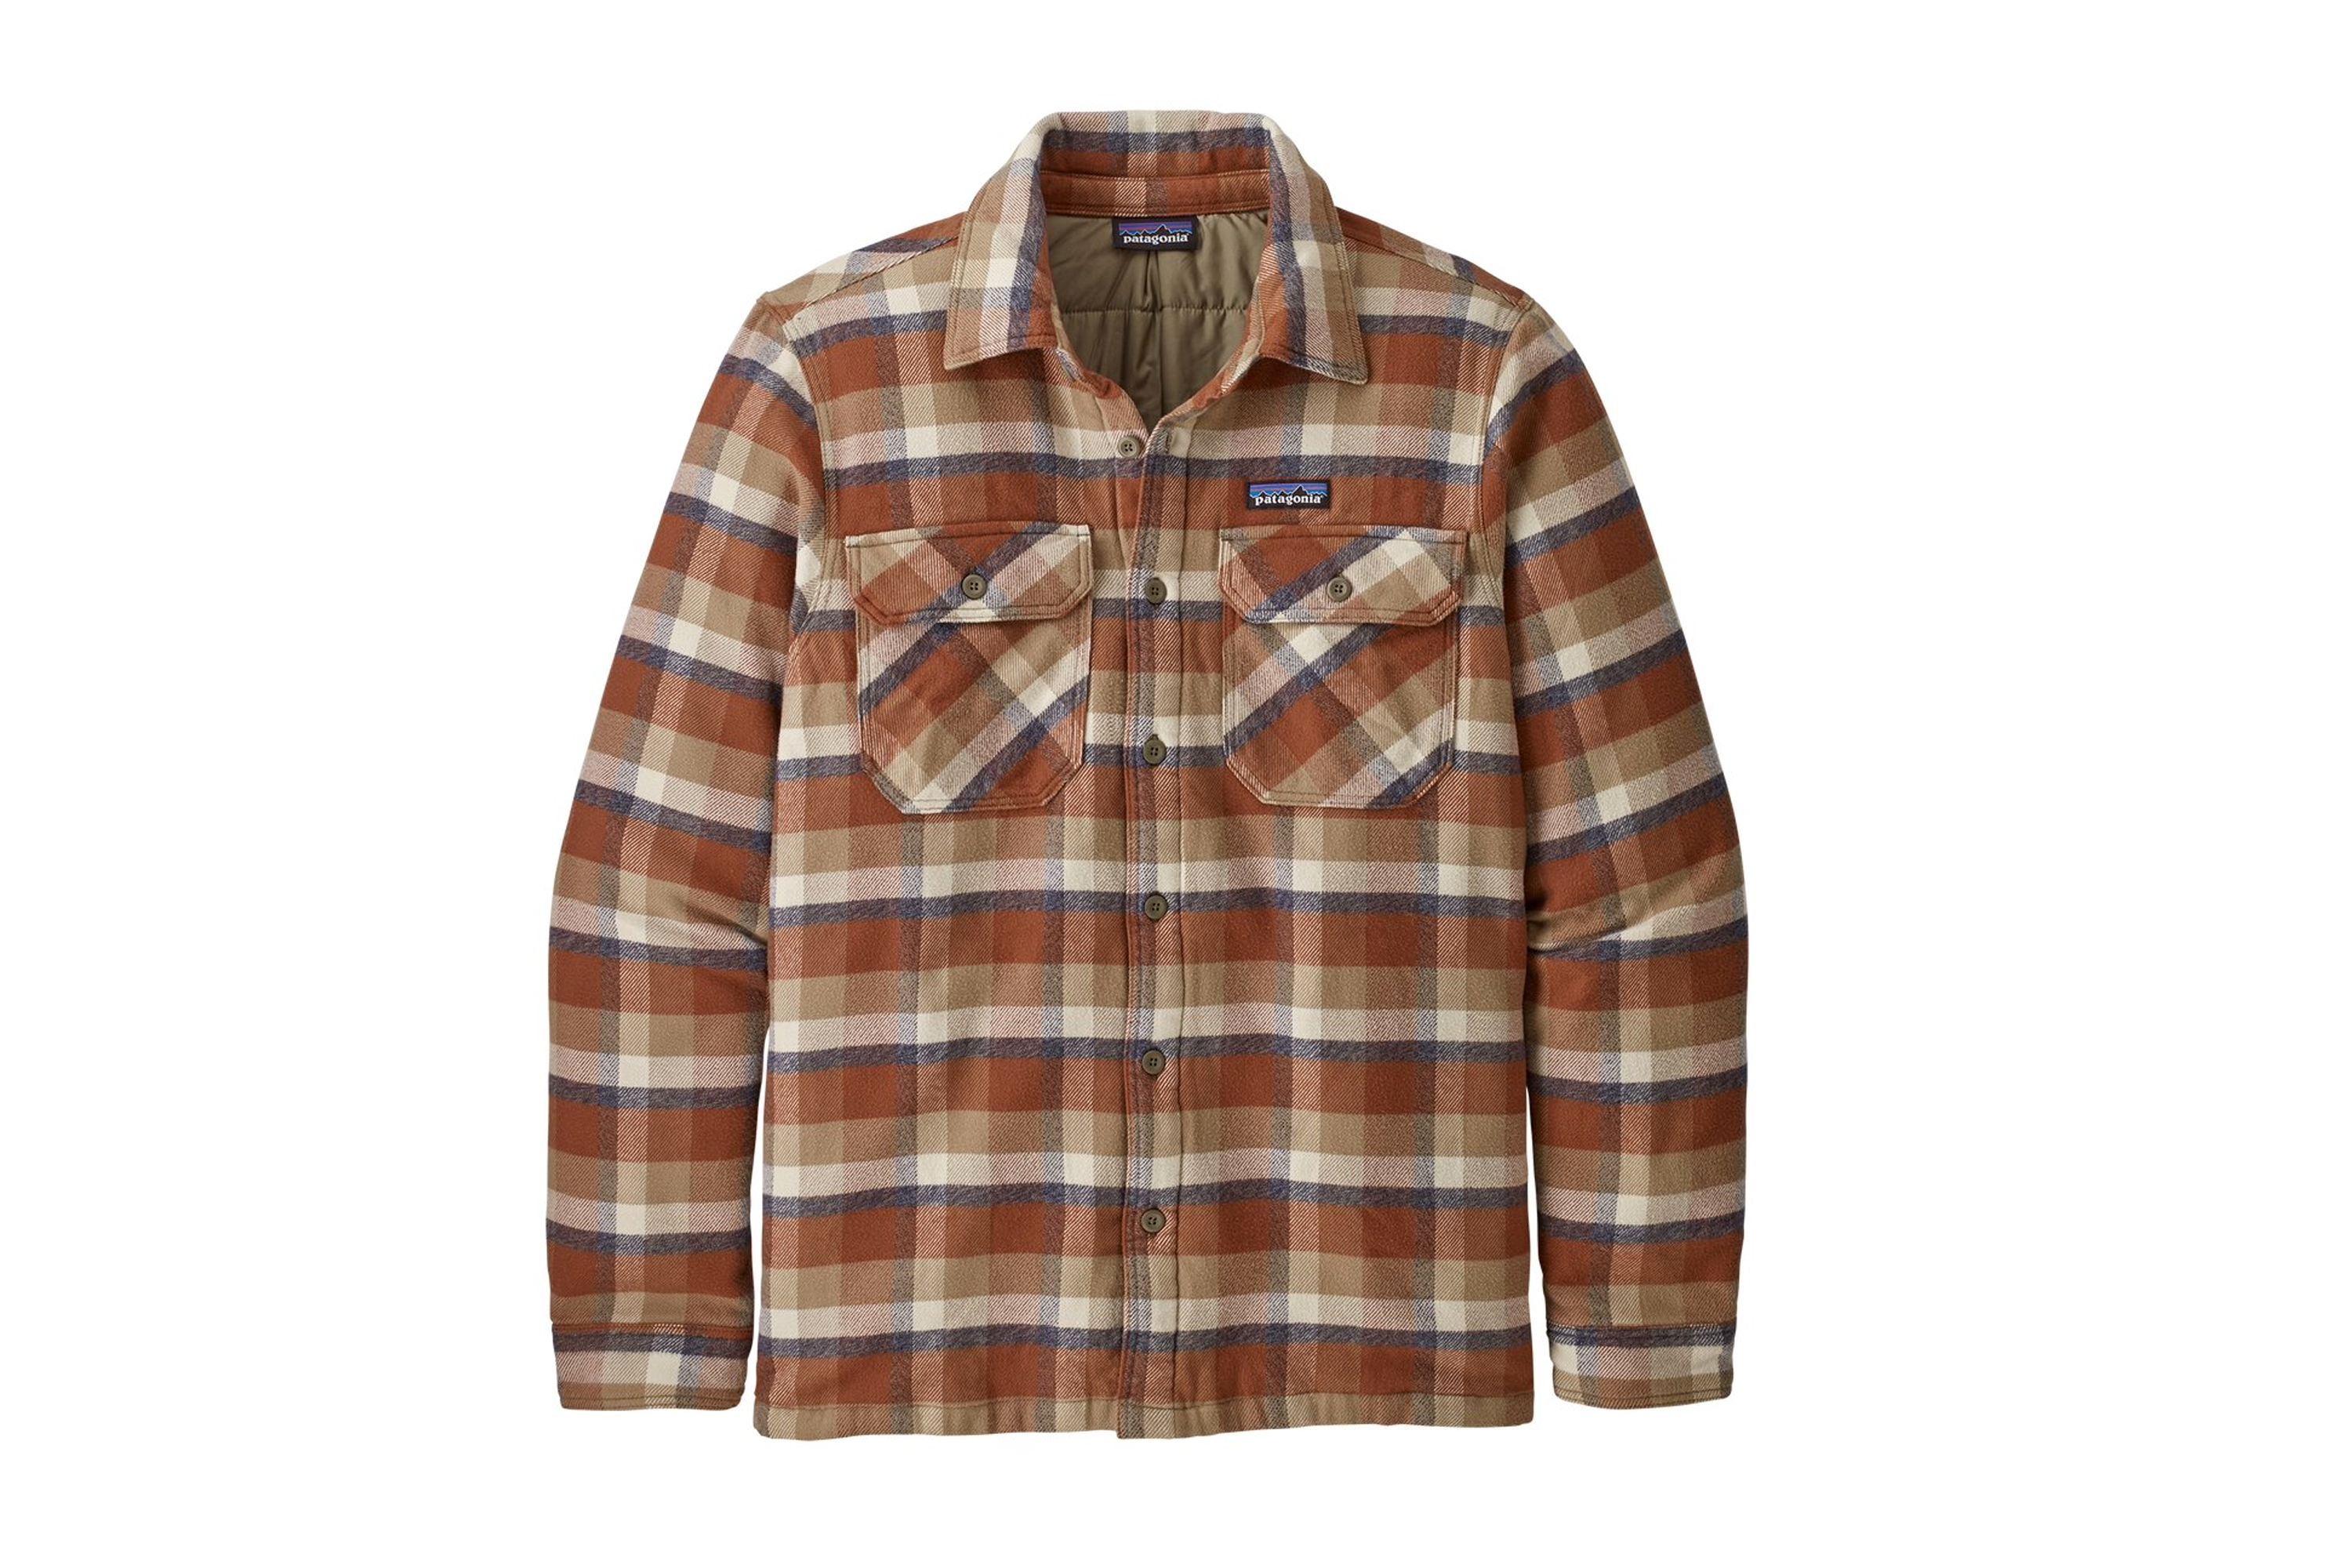 Best_ShirtJac_Patagonia_Insulated_Fjord_Flannel_Jacket